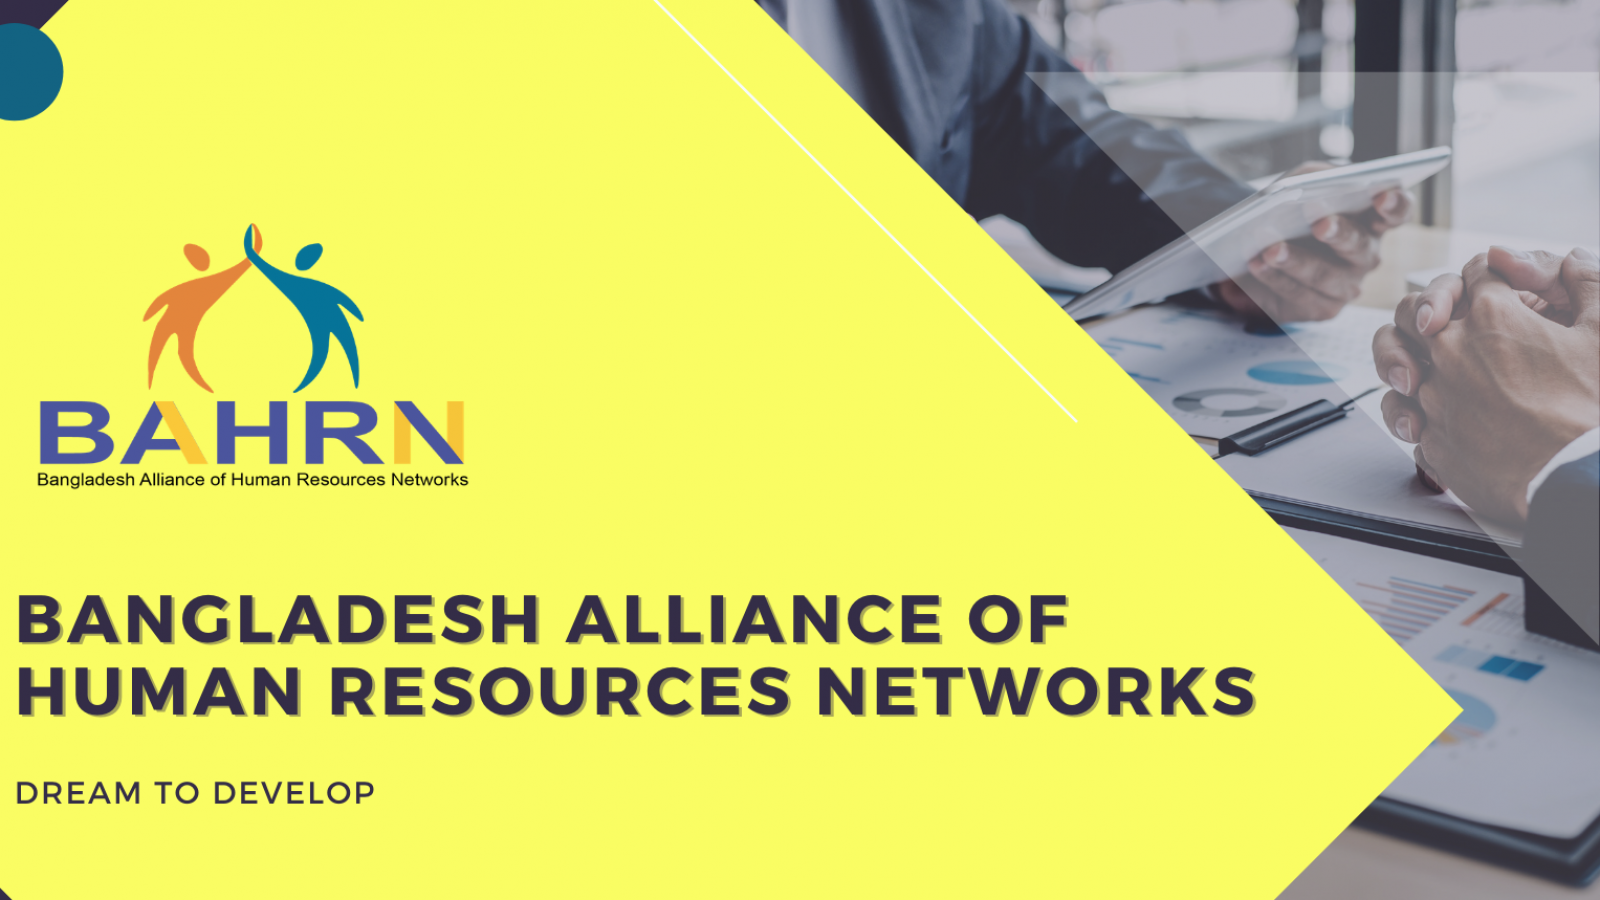 Bangladesh Alliance of Human Resources Networks (1)